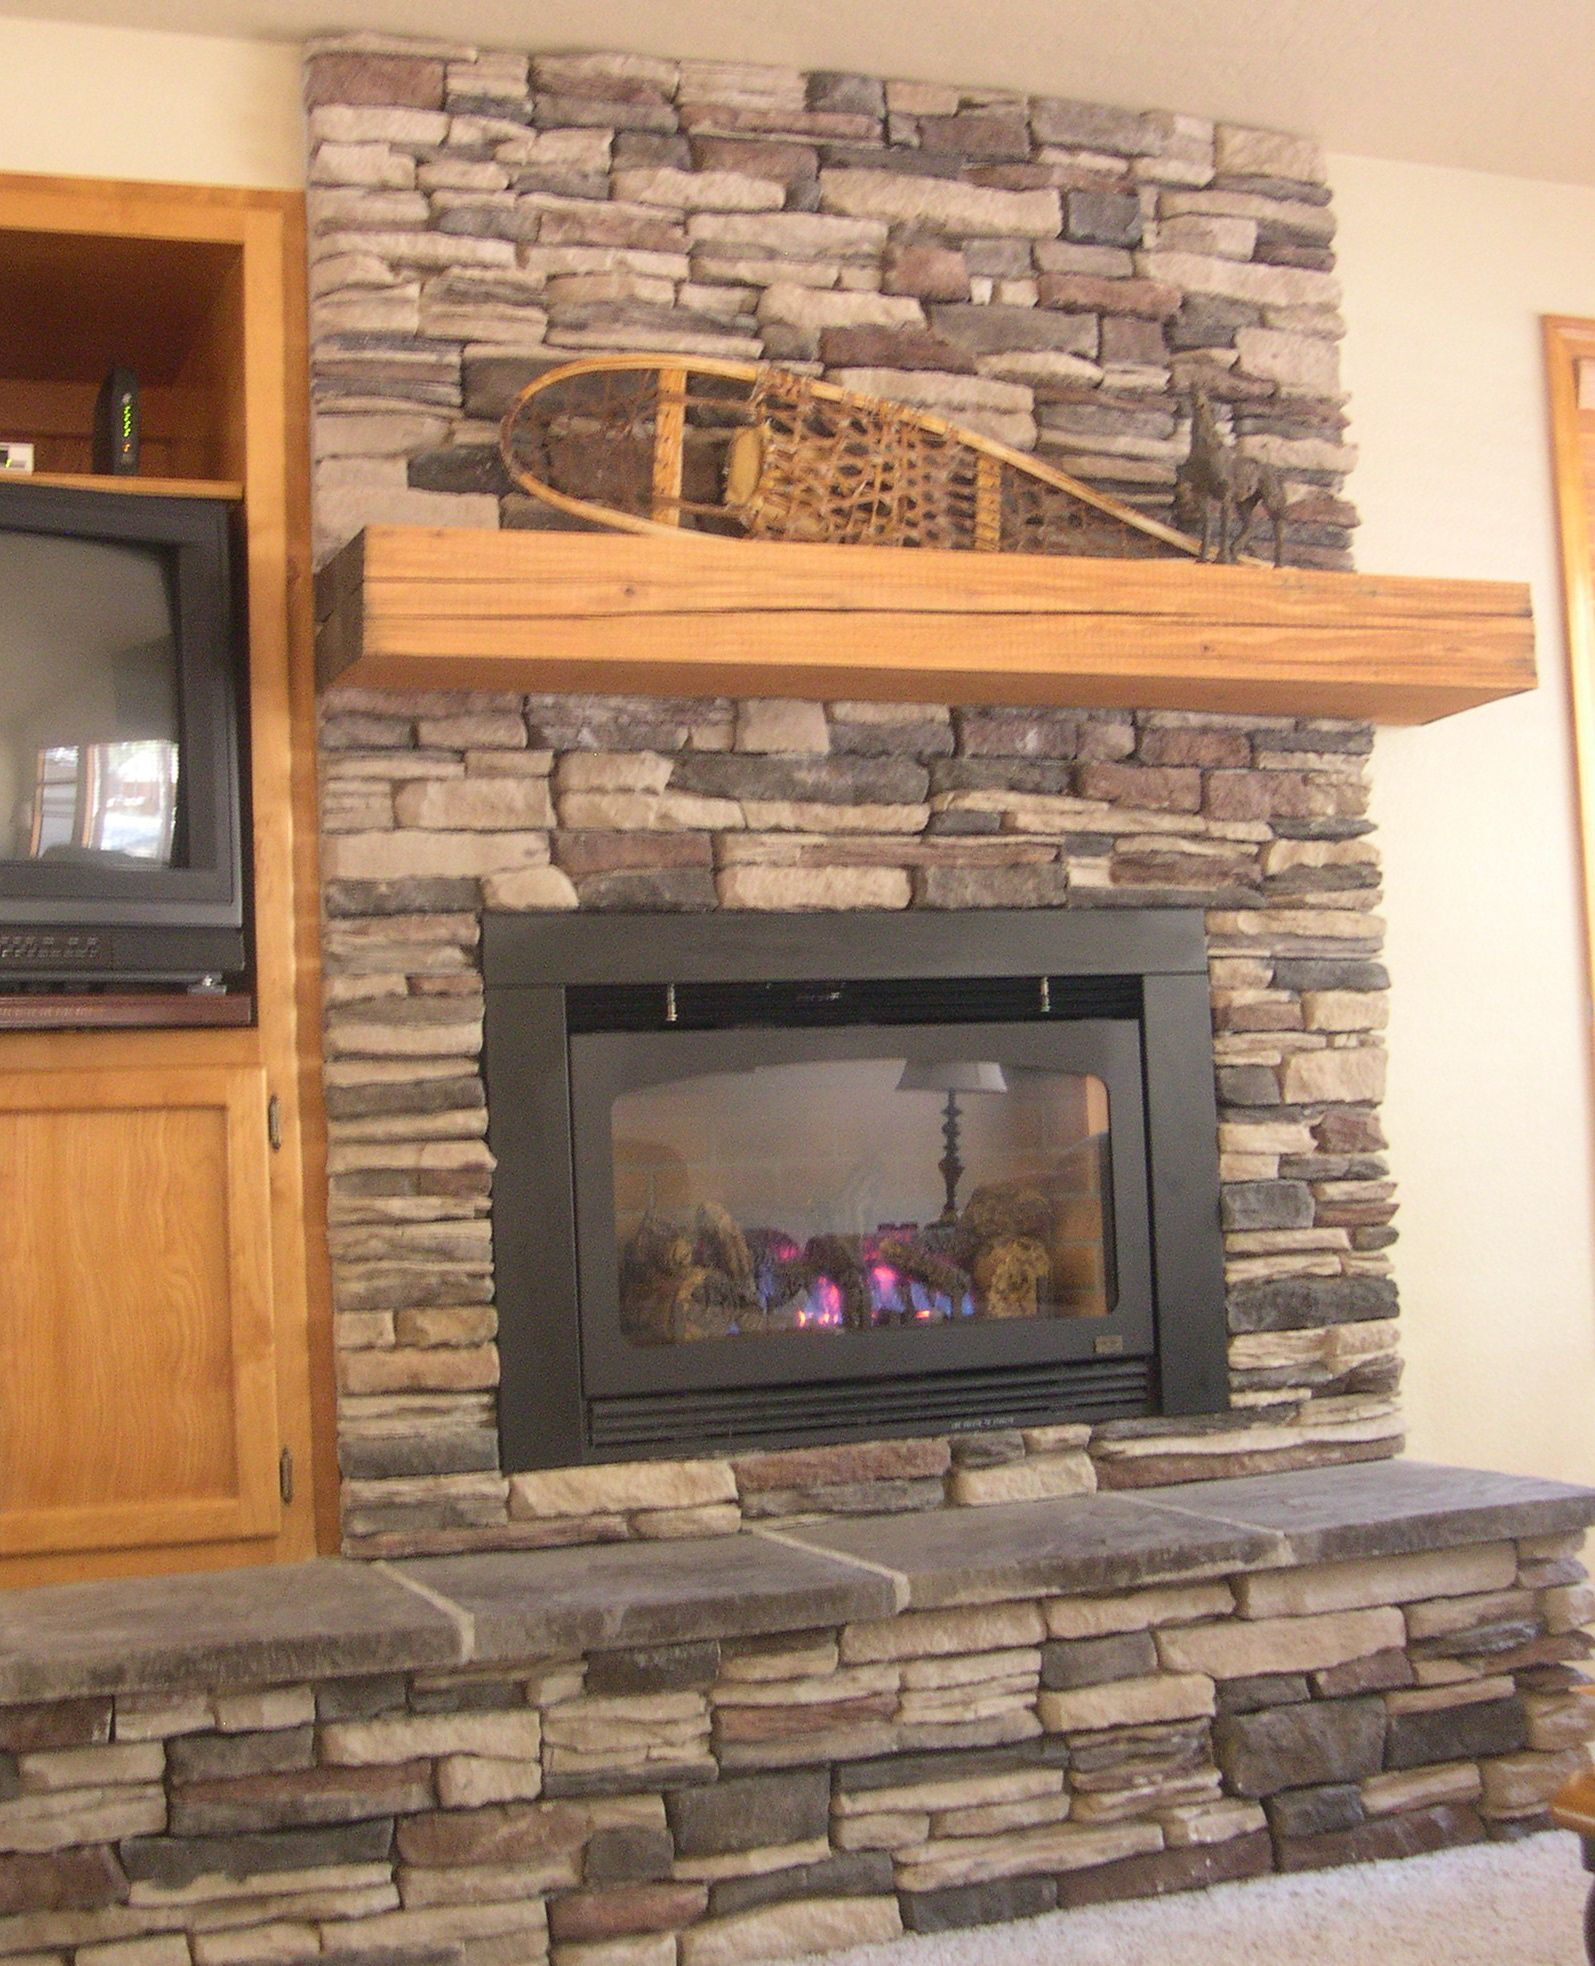 Home Decor Inspiration Fireplace Sweet Unfinshed Wooden Floating Racks And Television Cabinetry As Well Rustic Stacked Stone Decorate